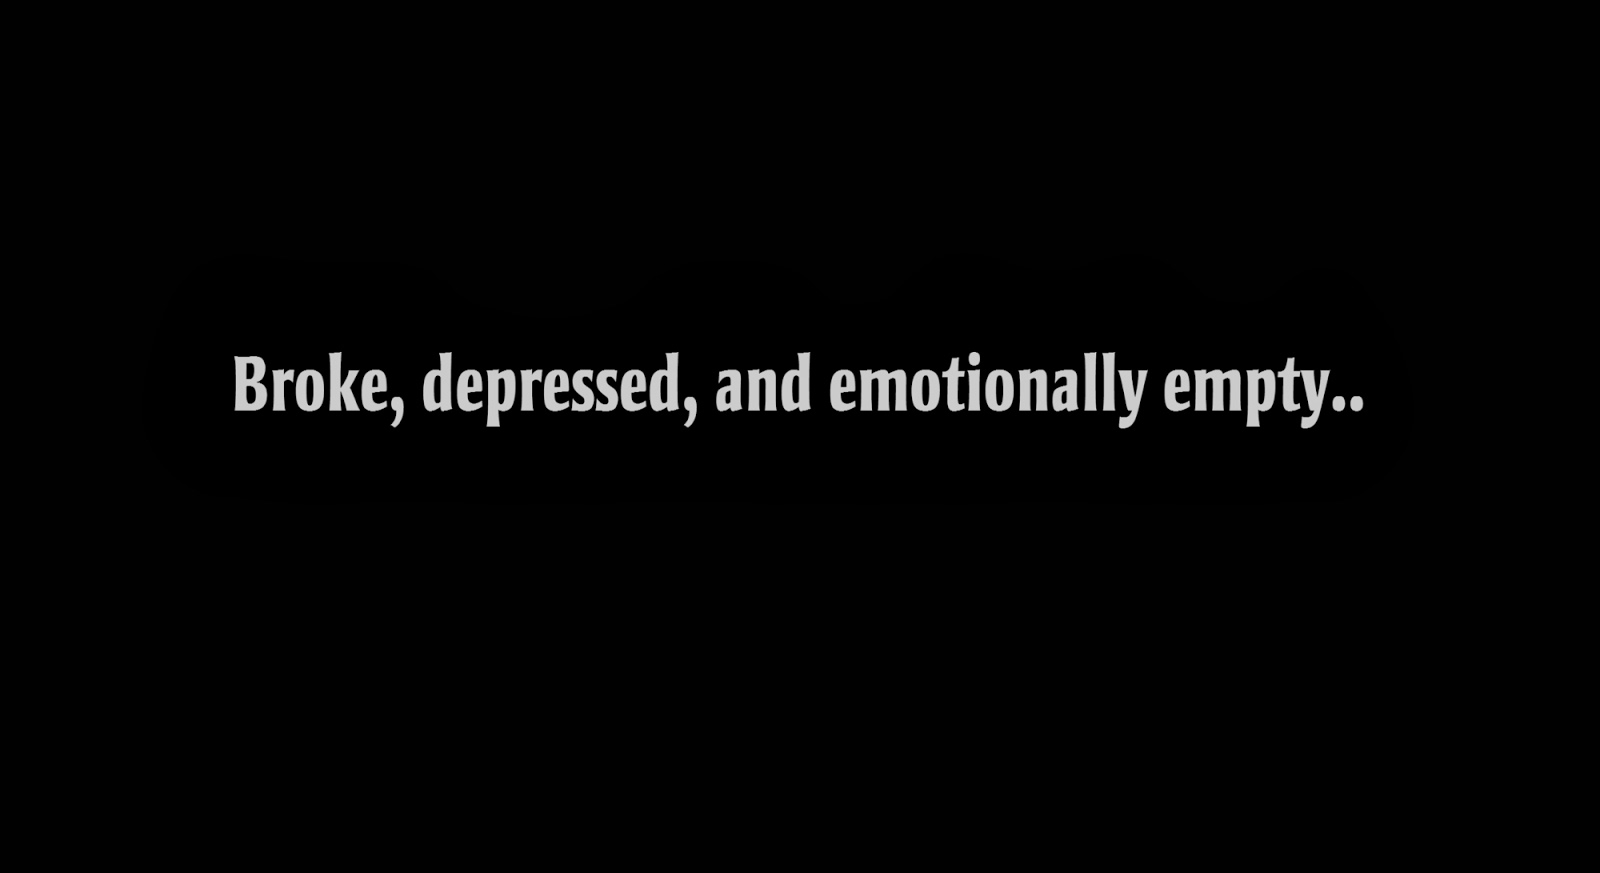 Broke, depressed, and emotionally empty..